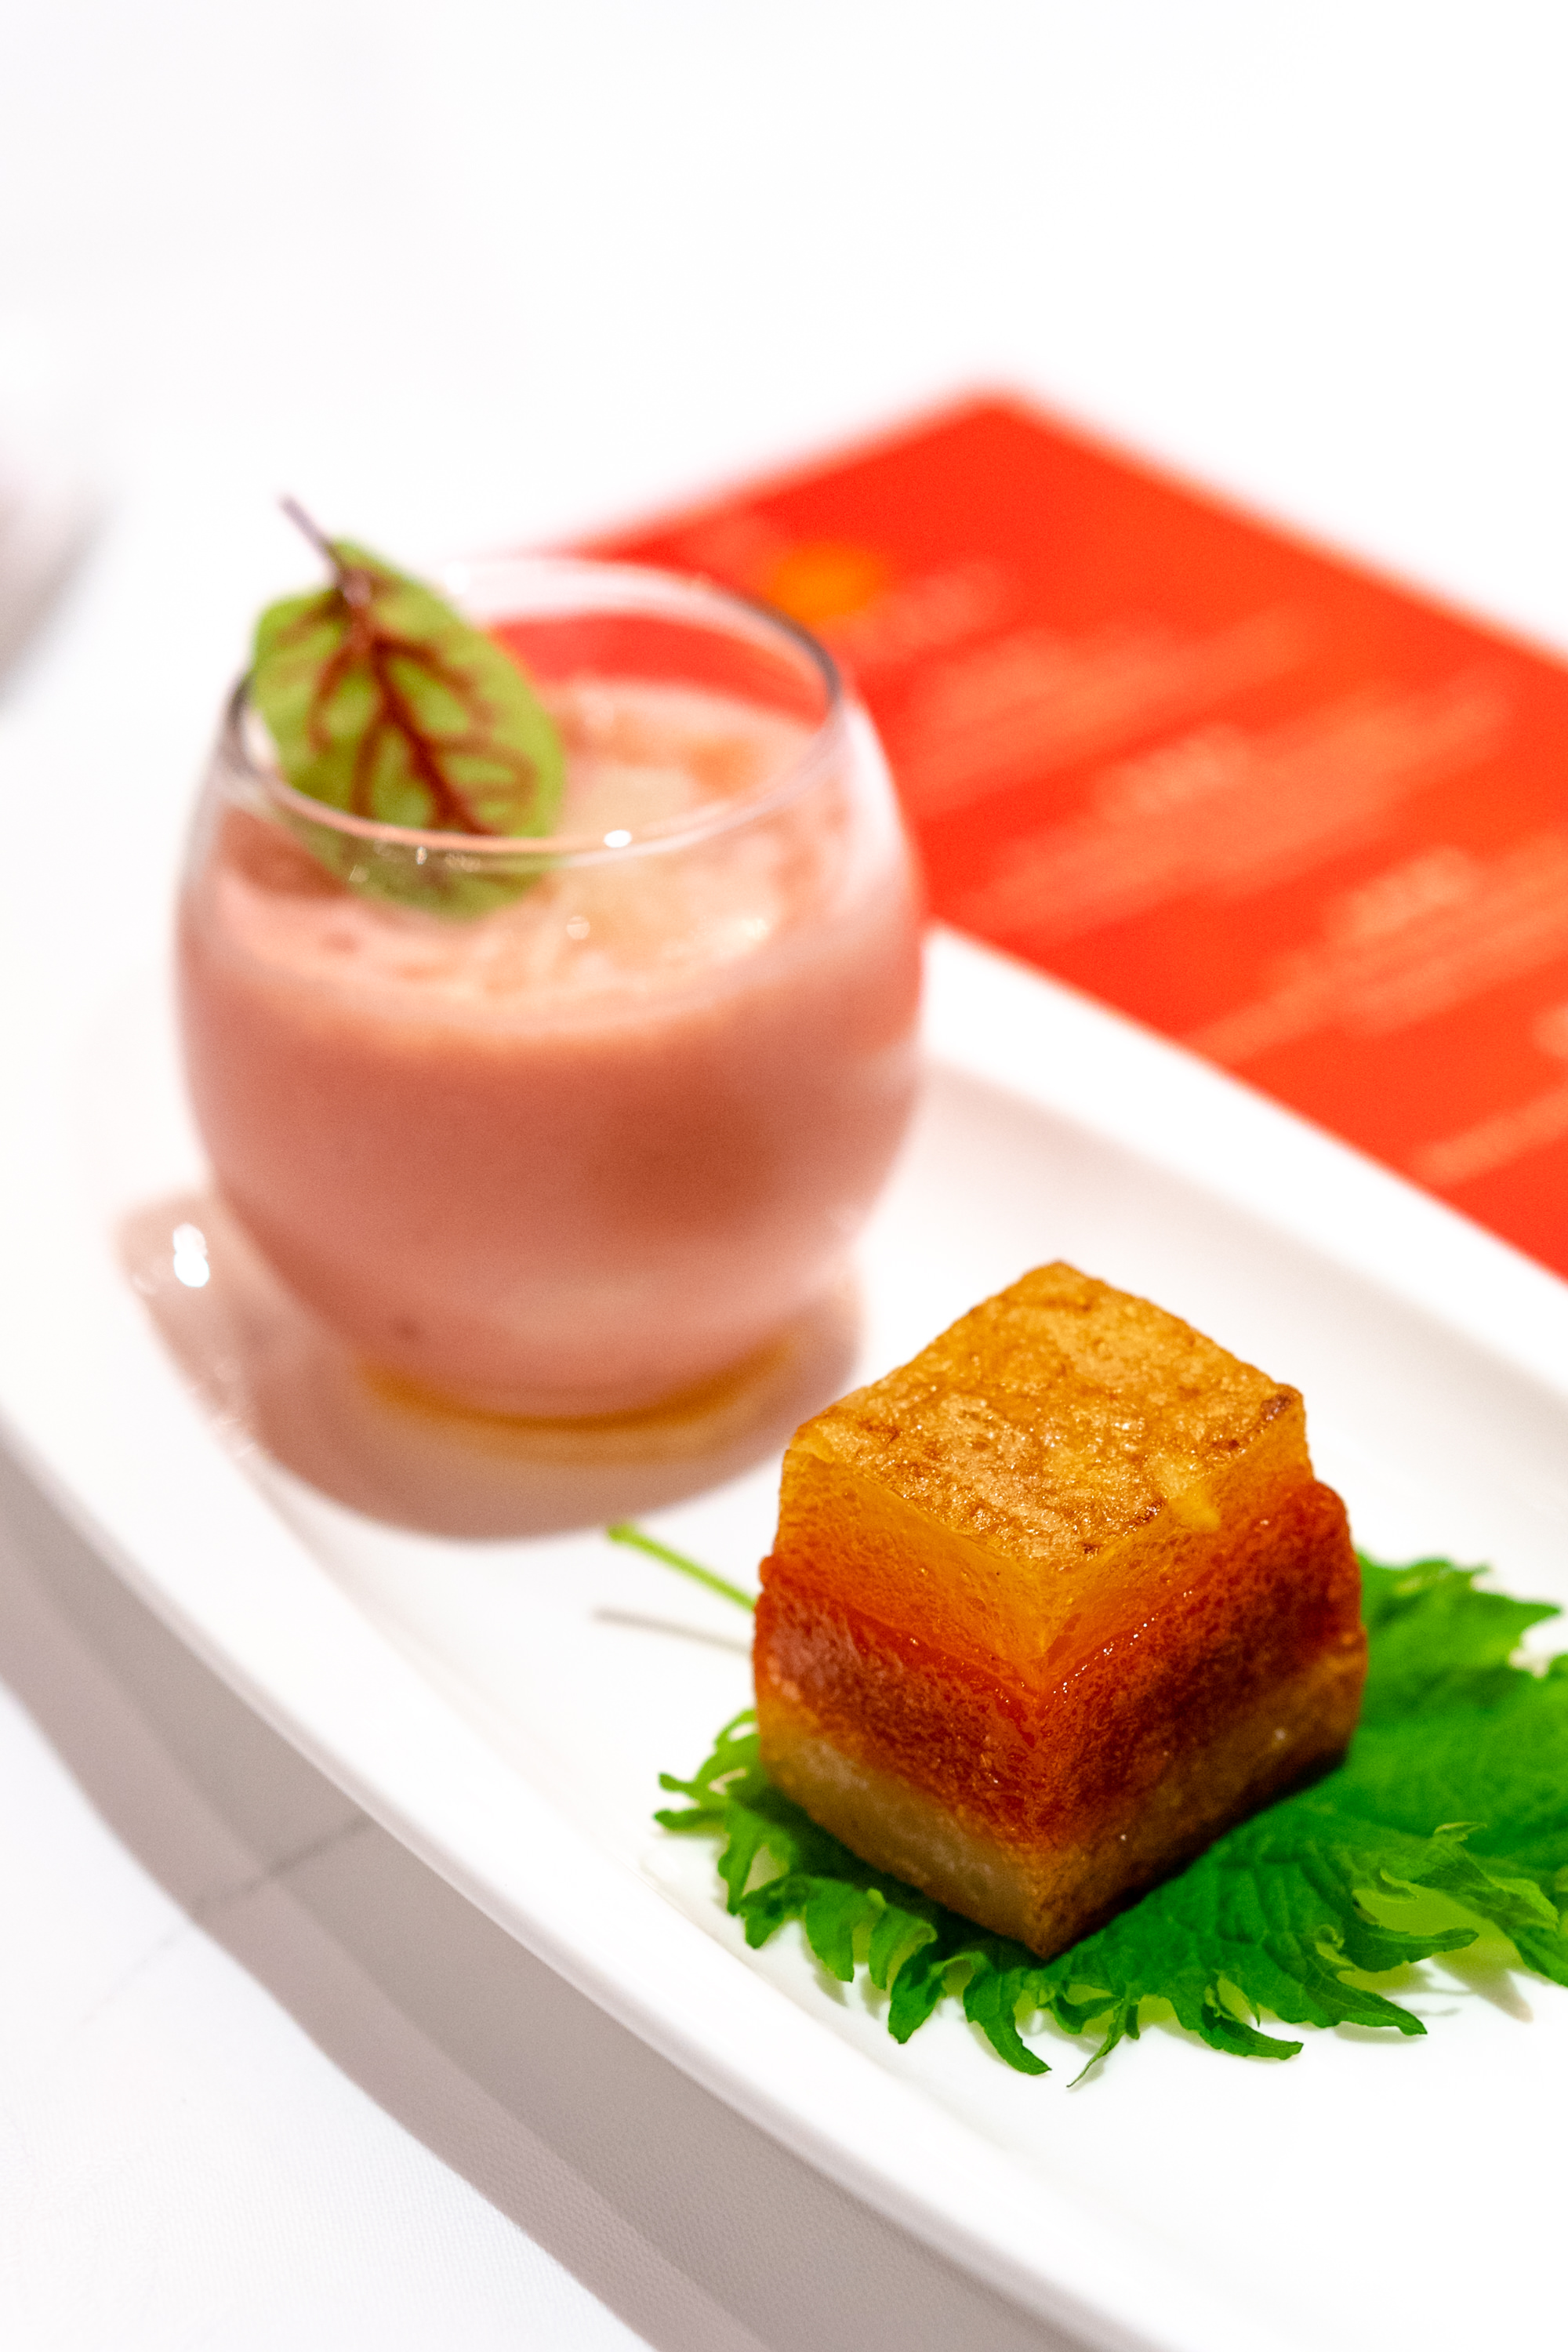 Chilled Guava Sago Cream and Pomelo accompanied with Fortune Nian Gao